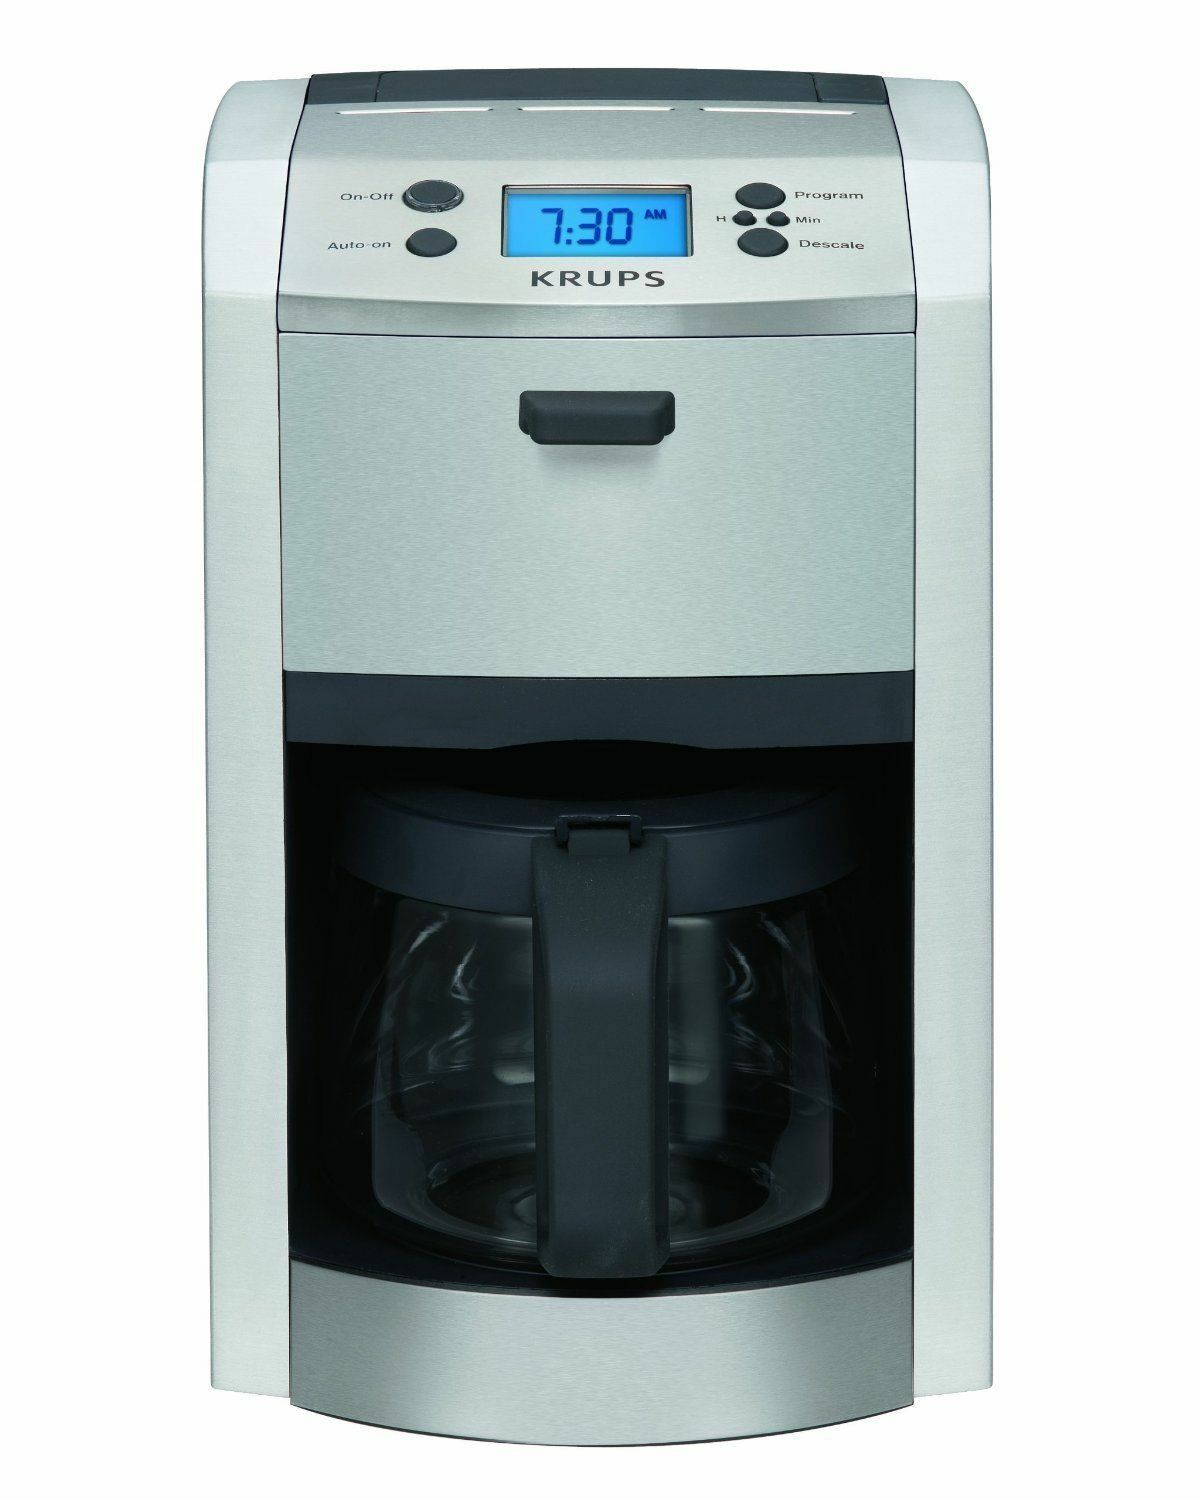 KRUPS KM8105 12-CUP DIE-CAST PROGRAMABLE COFFEE MAKER STAINLESS STEEL BRAND NEW